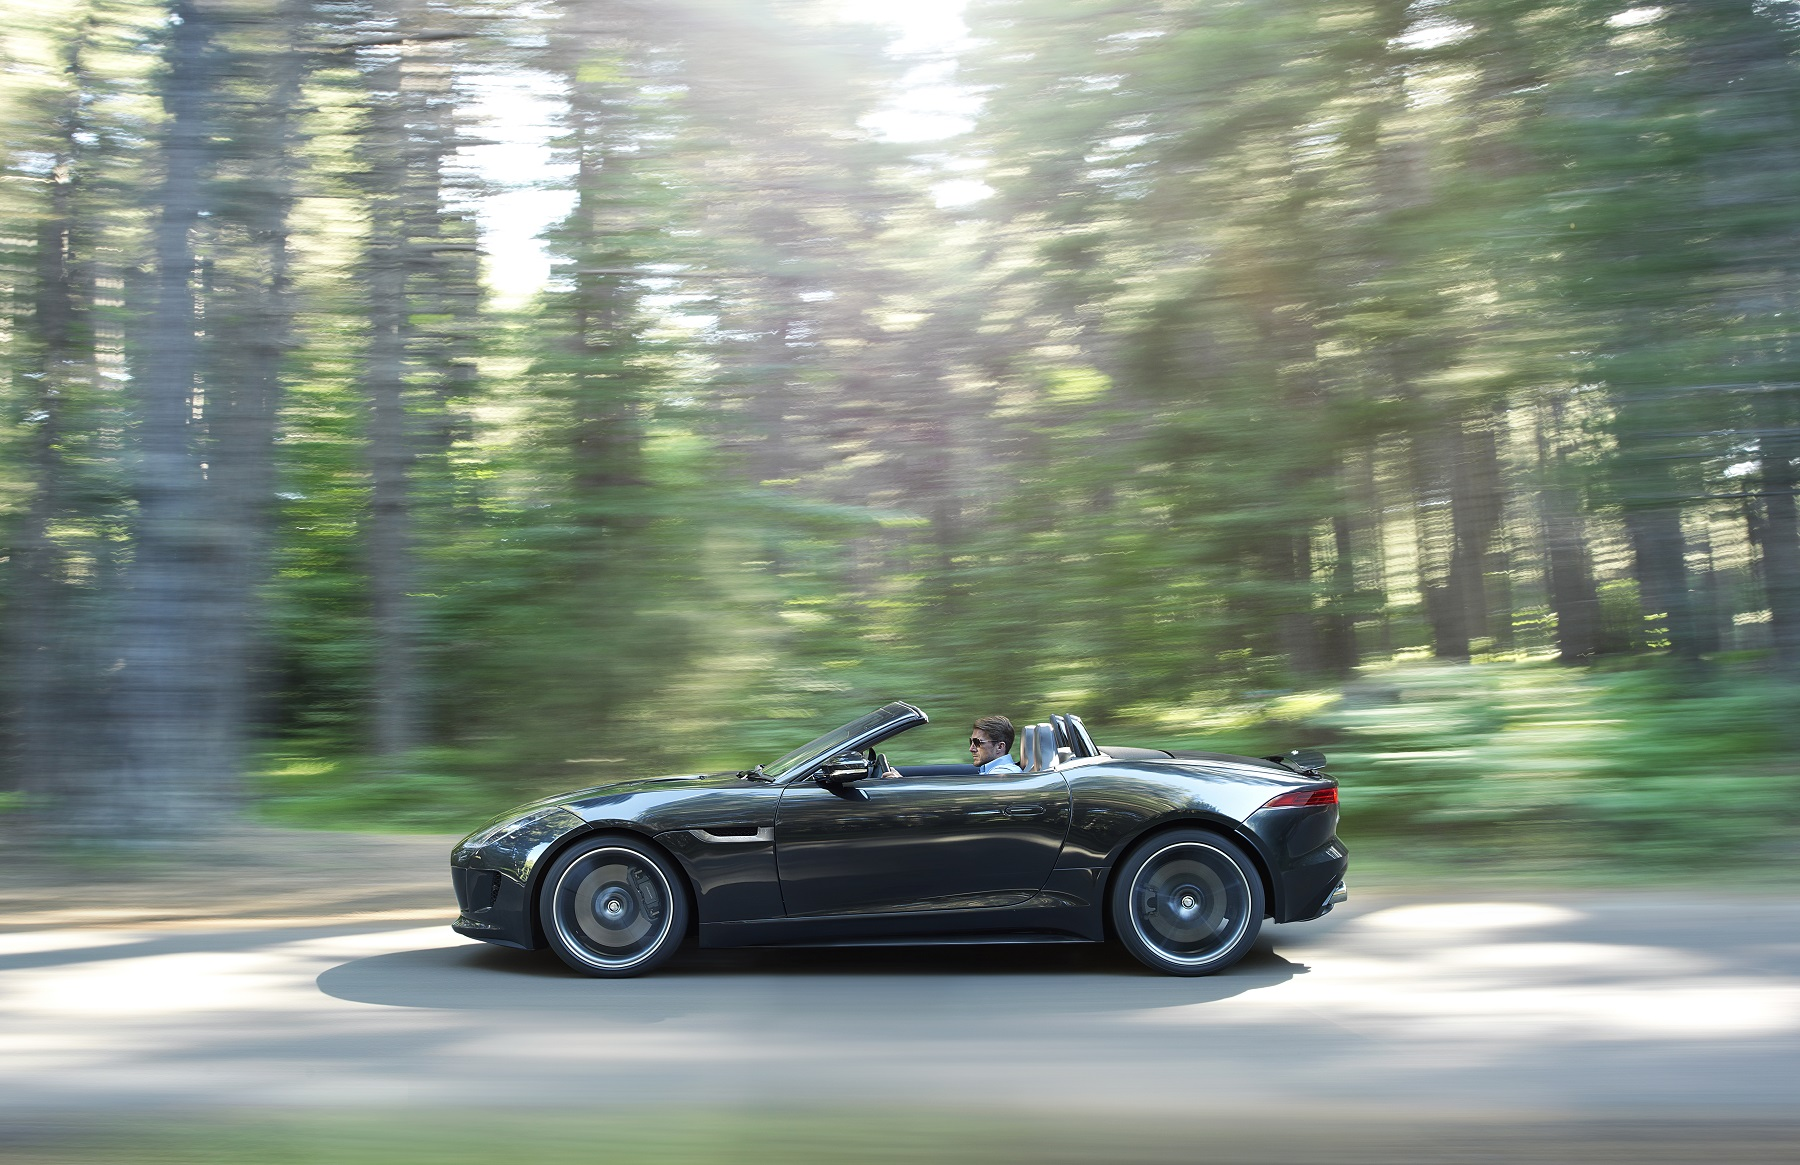 Manufacturer photo: The new 2014 Jaguar F-Type represents a return to the company's heart: a two-seat, convertible sports car focused on performance, agility and driver involvement